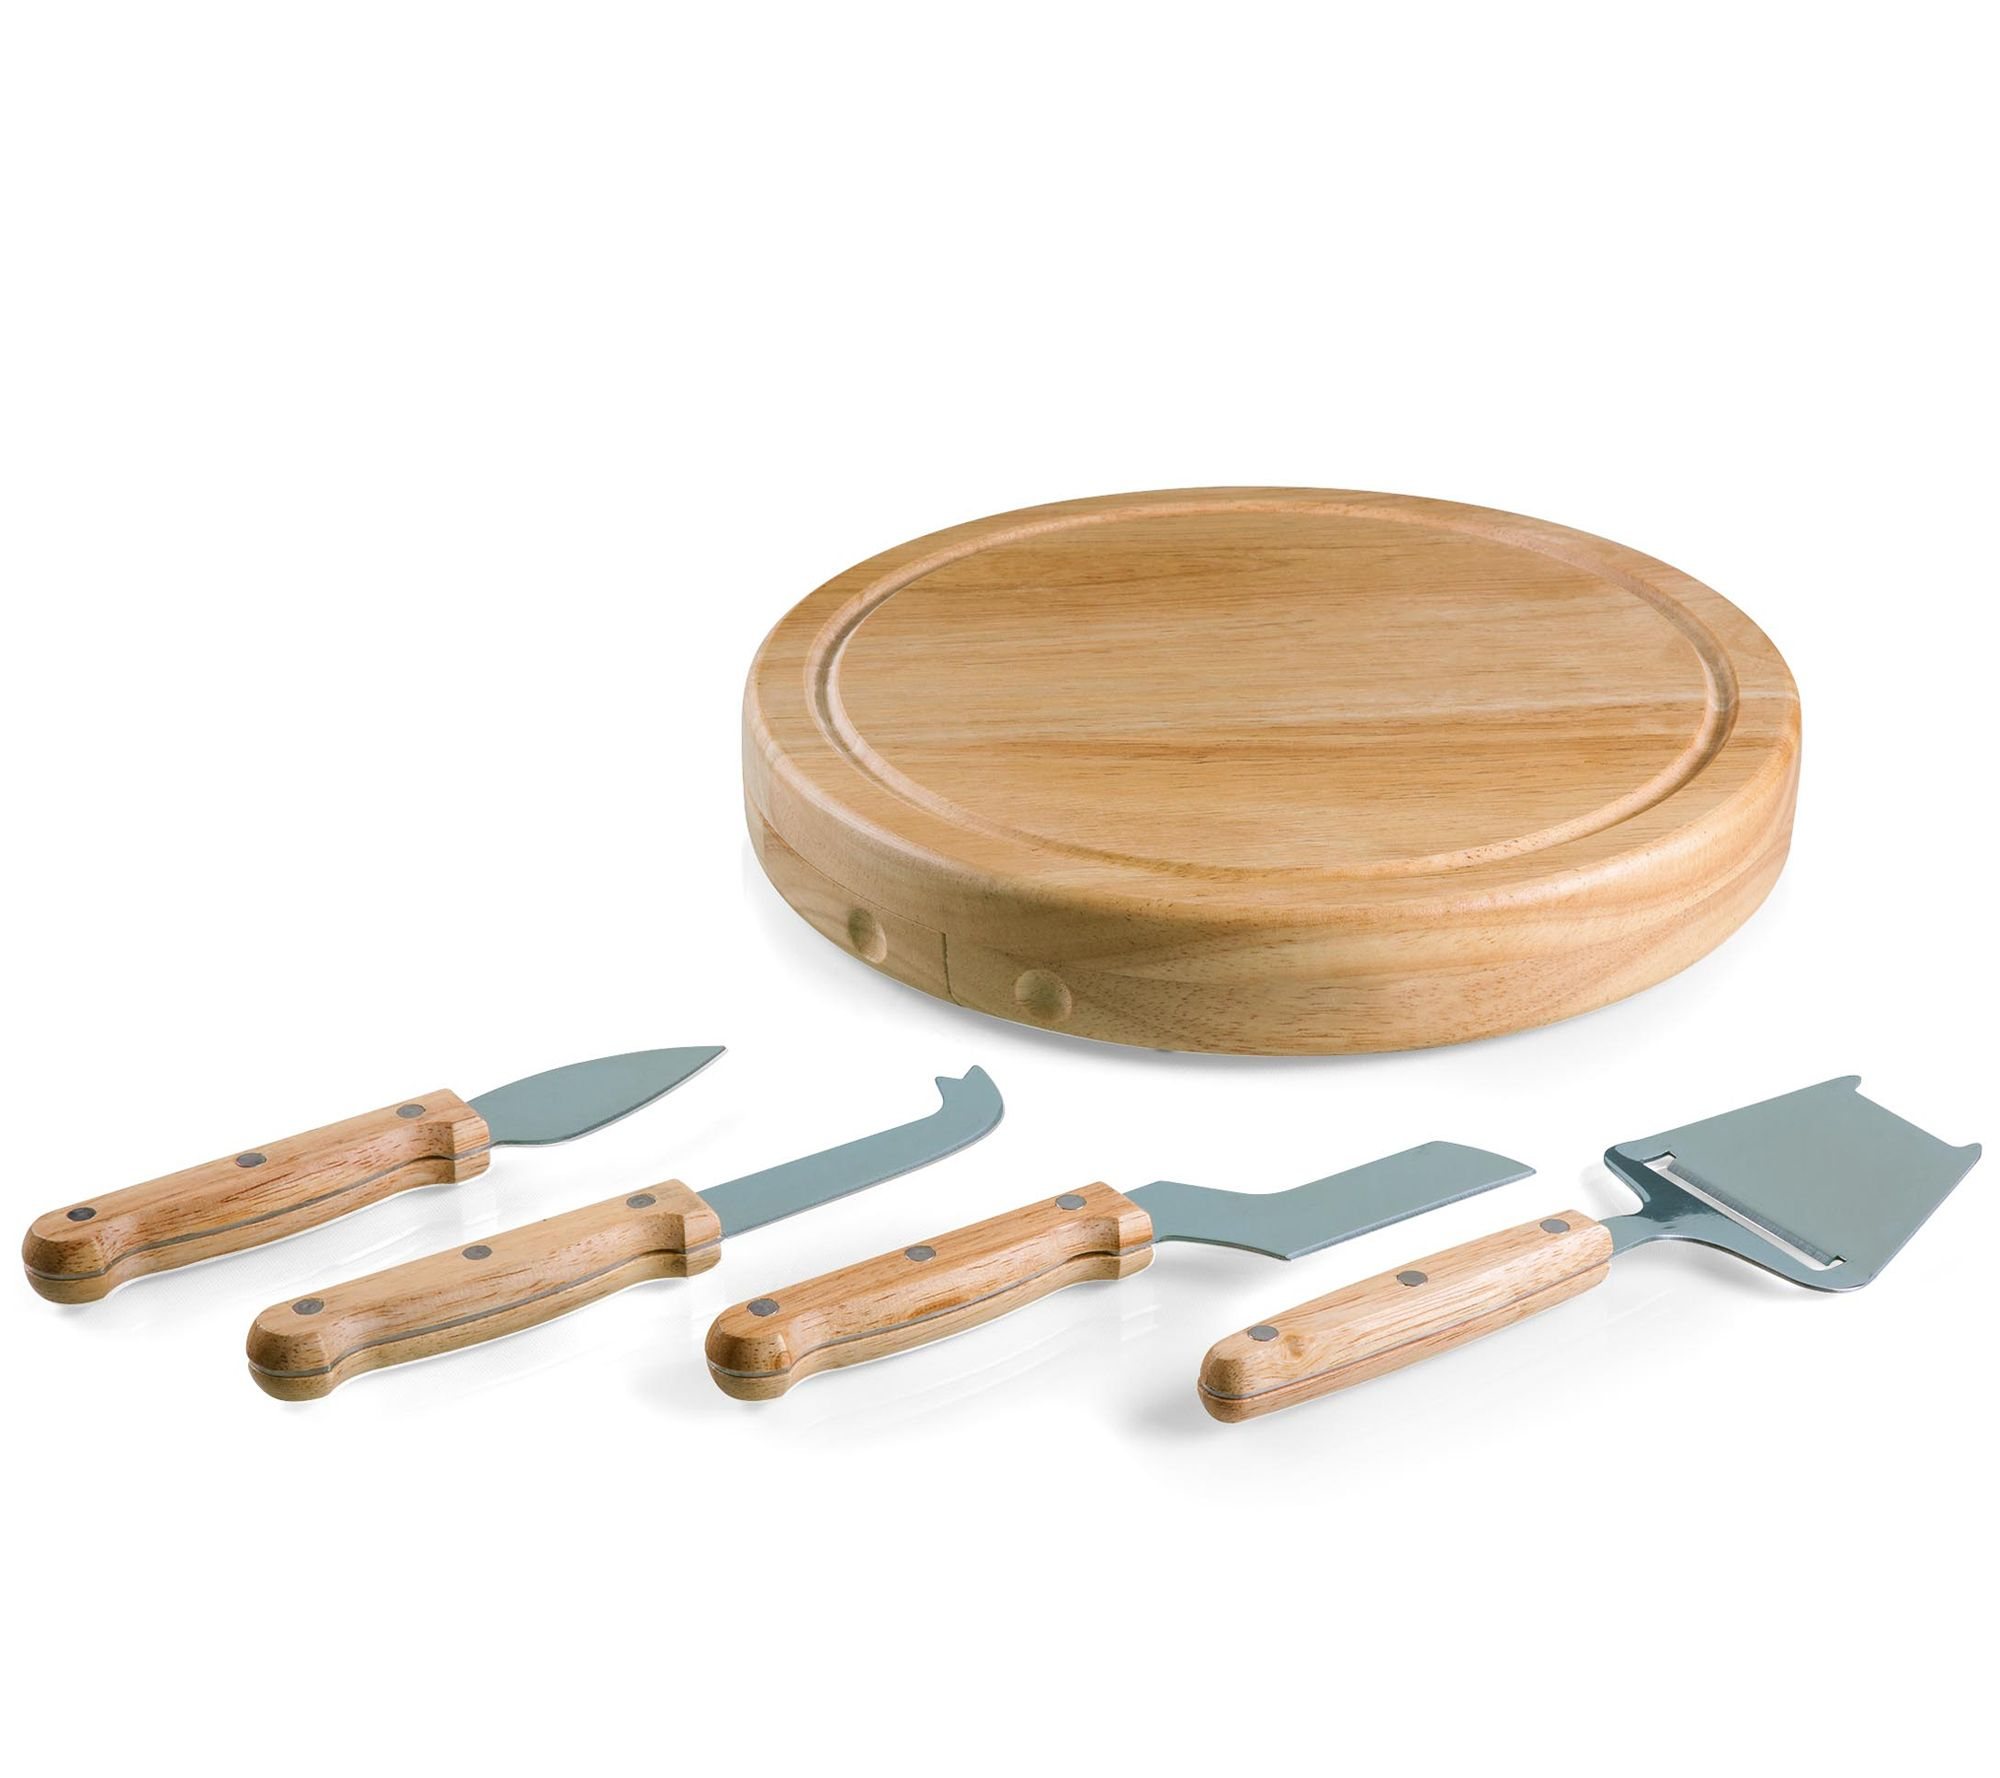 Get 9% off a cheese cutting board set